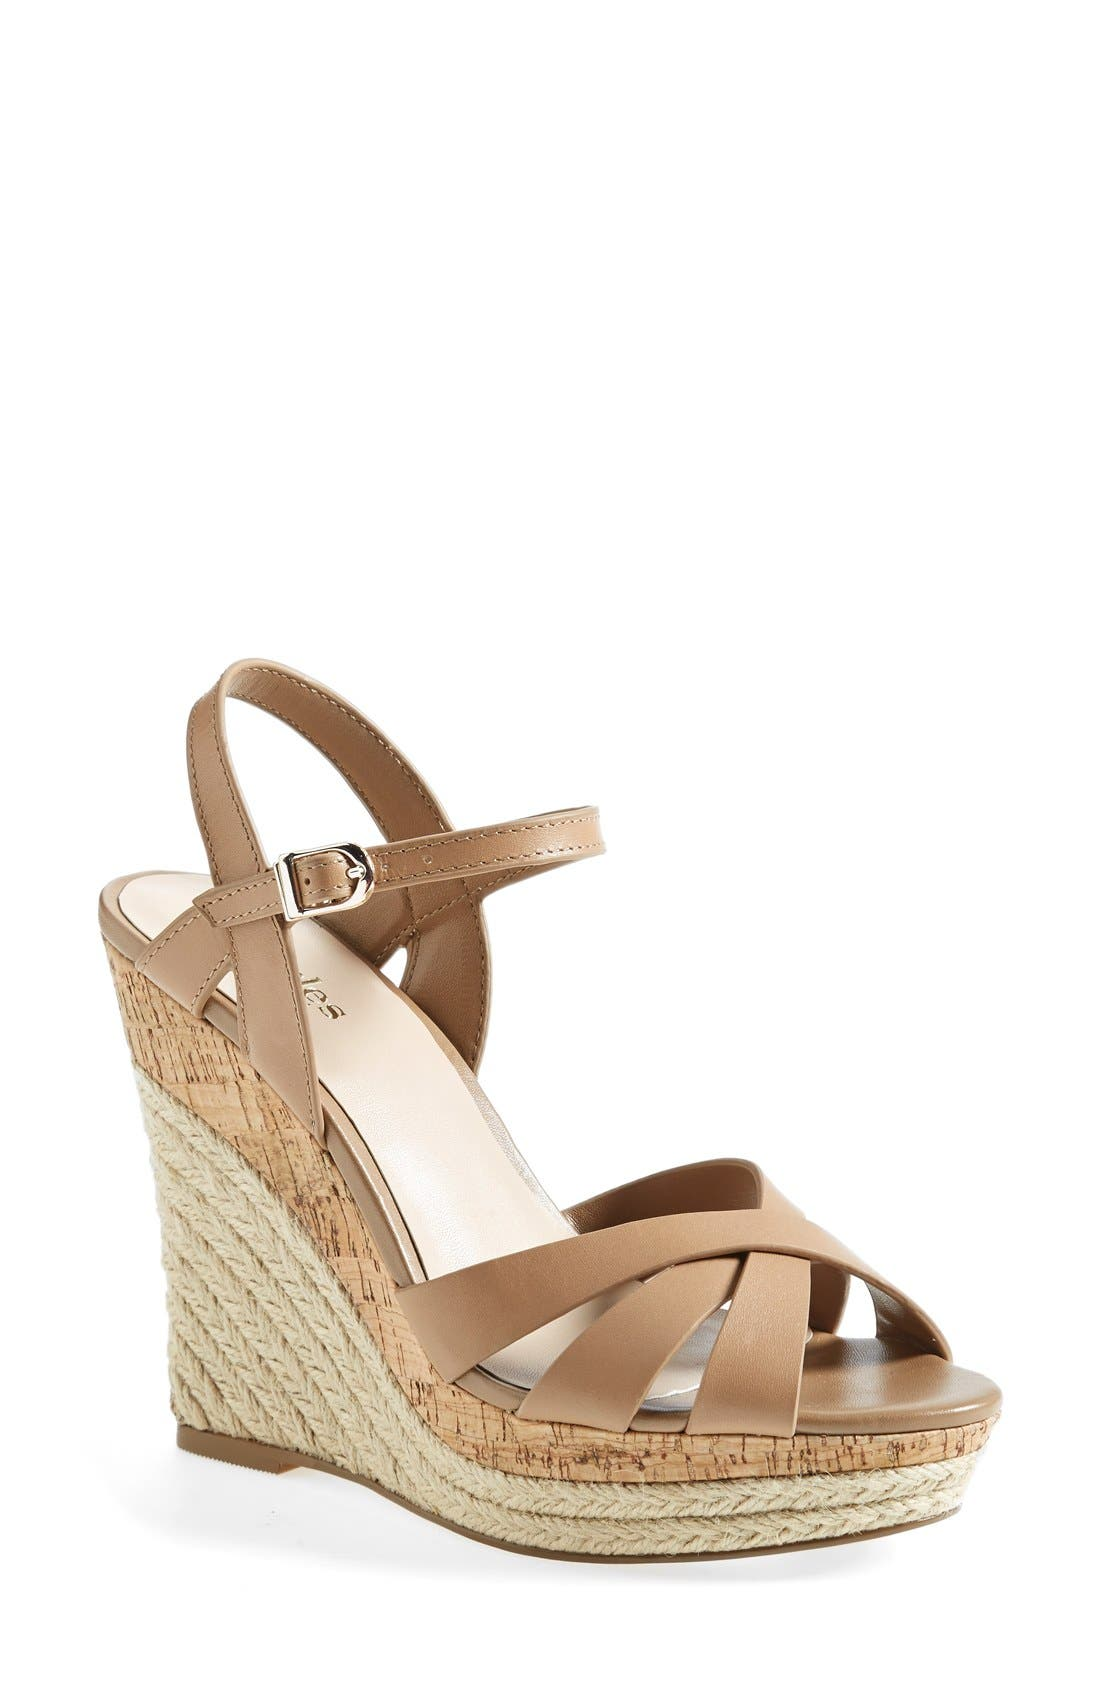 Main Image - Charles by Charles David 'Astro' Espadrille Sandal (Women)